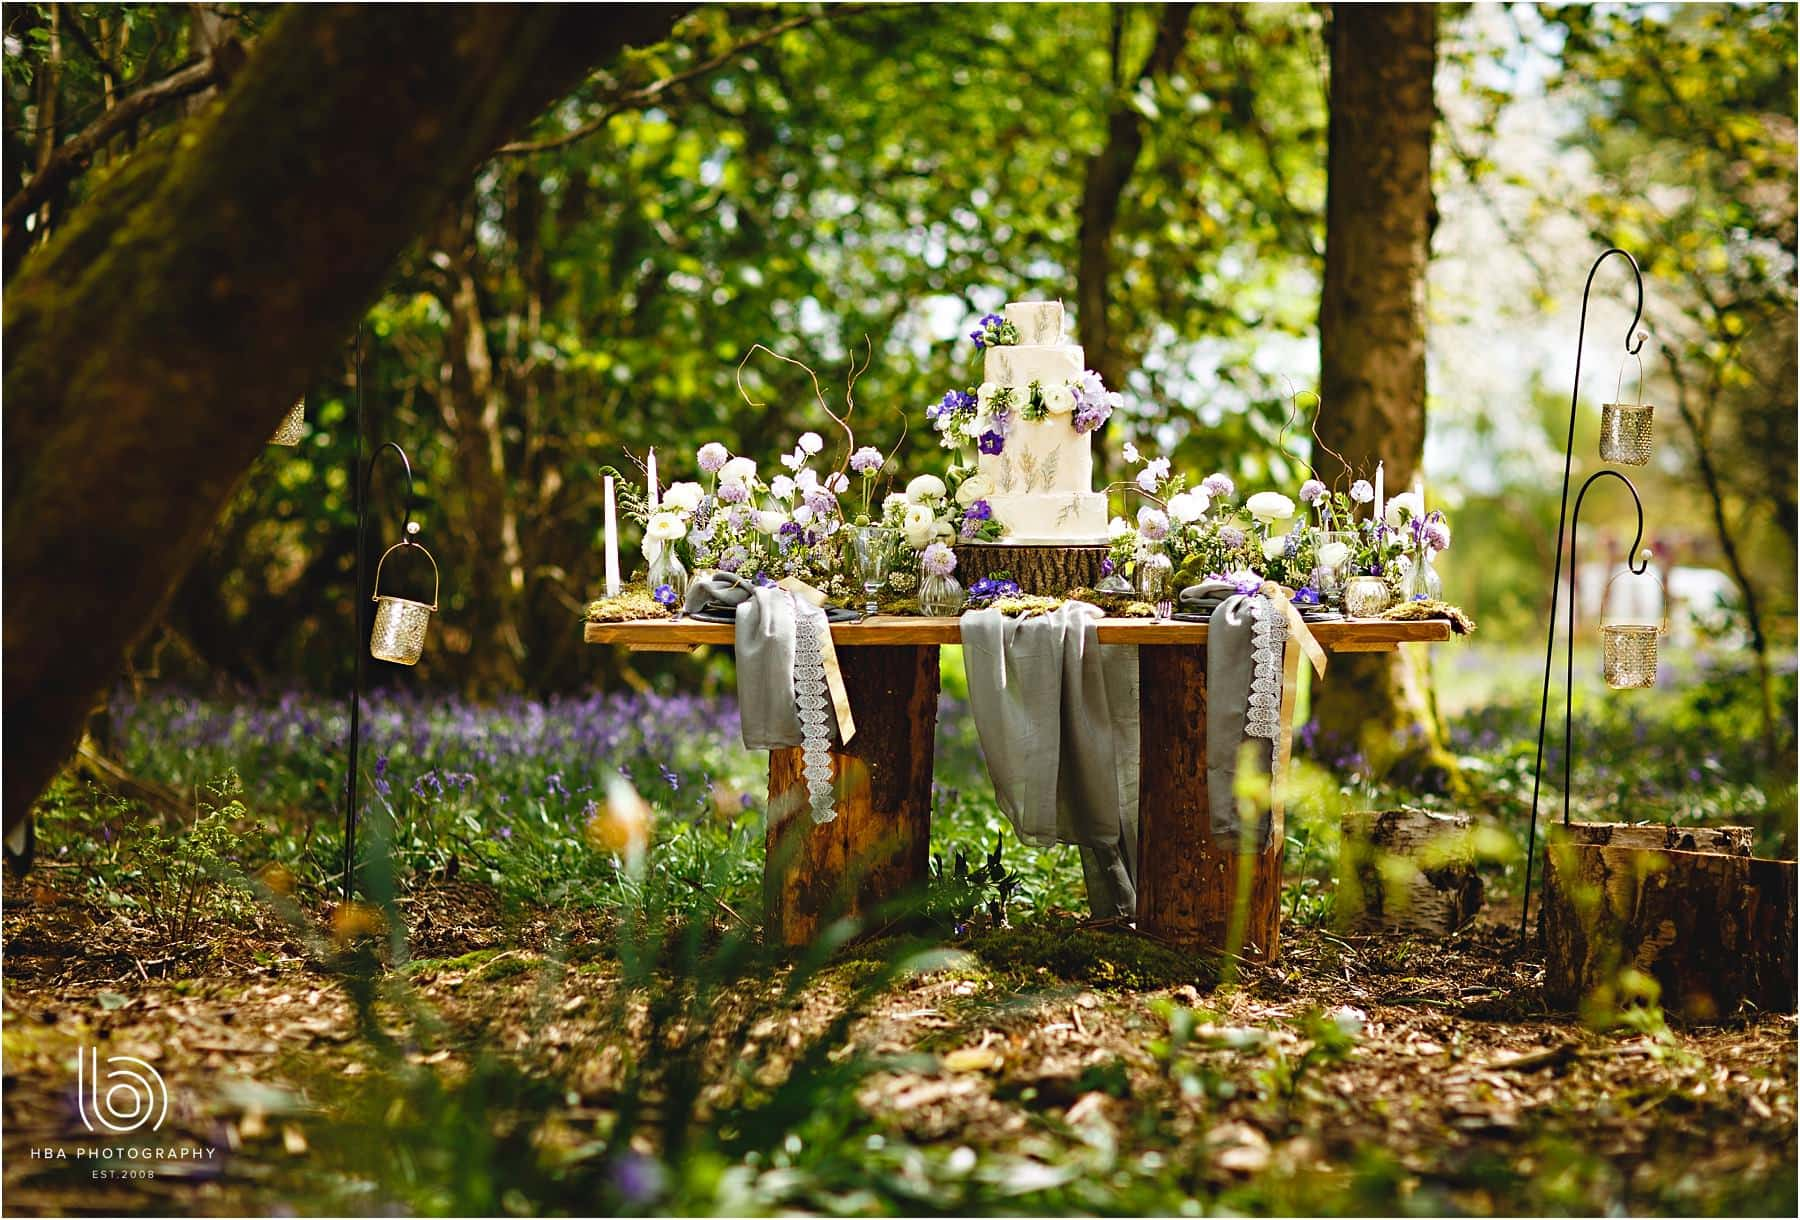 A wedding table in the woods